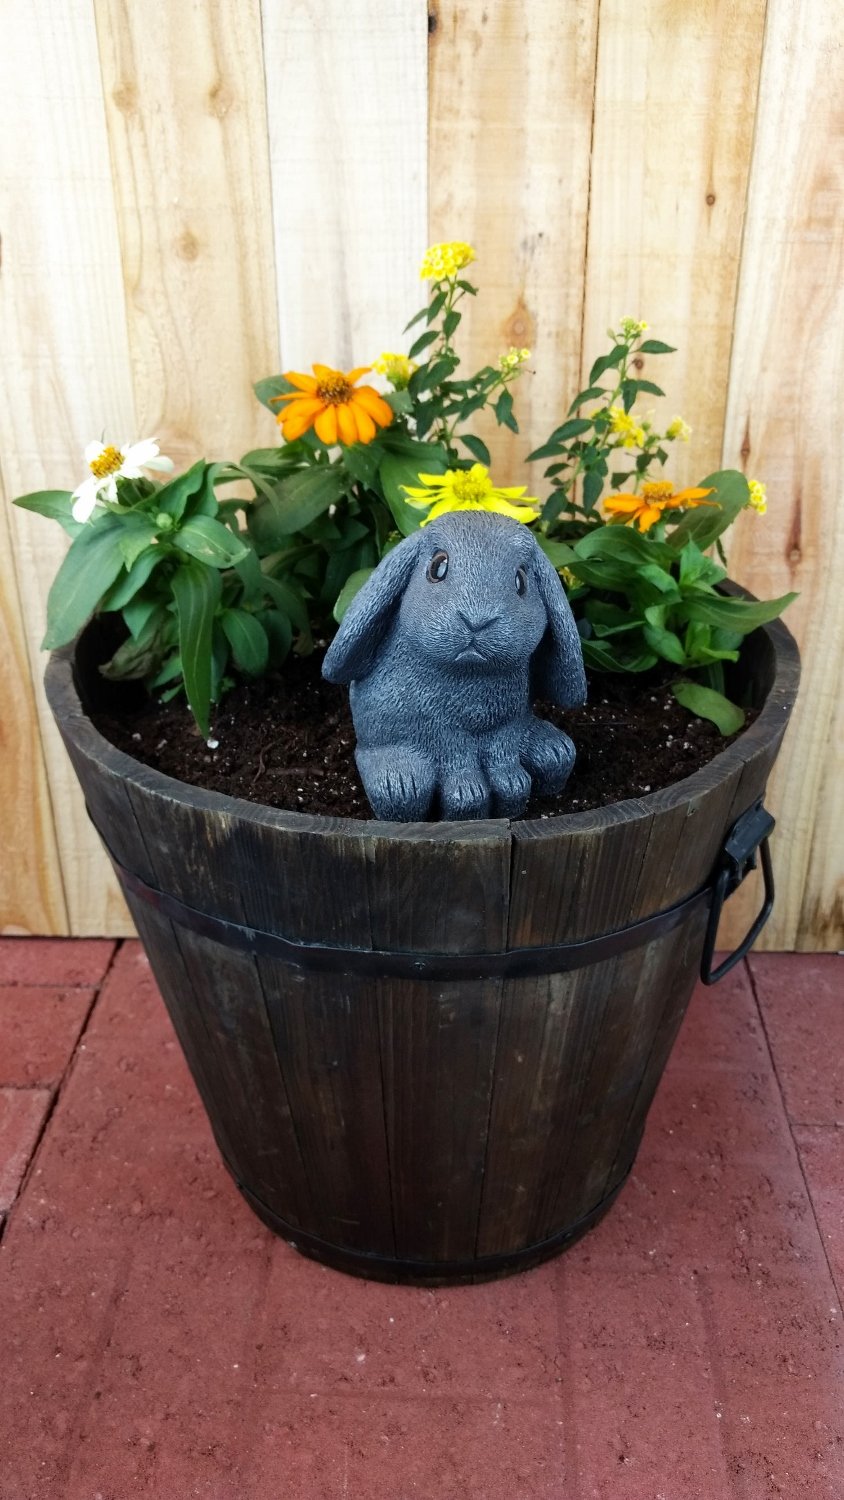 bunny-oak-barrel-planter6 (844x1500).jpg